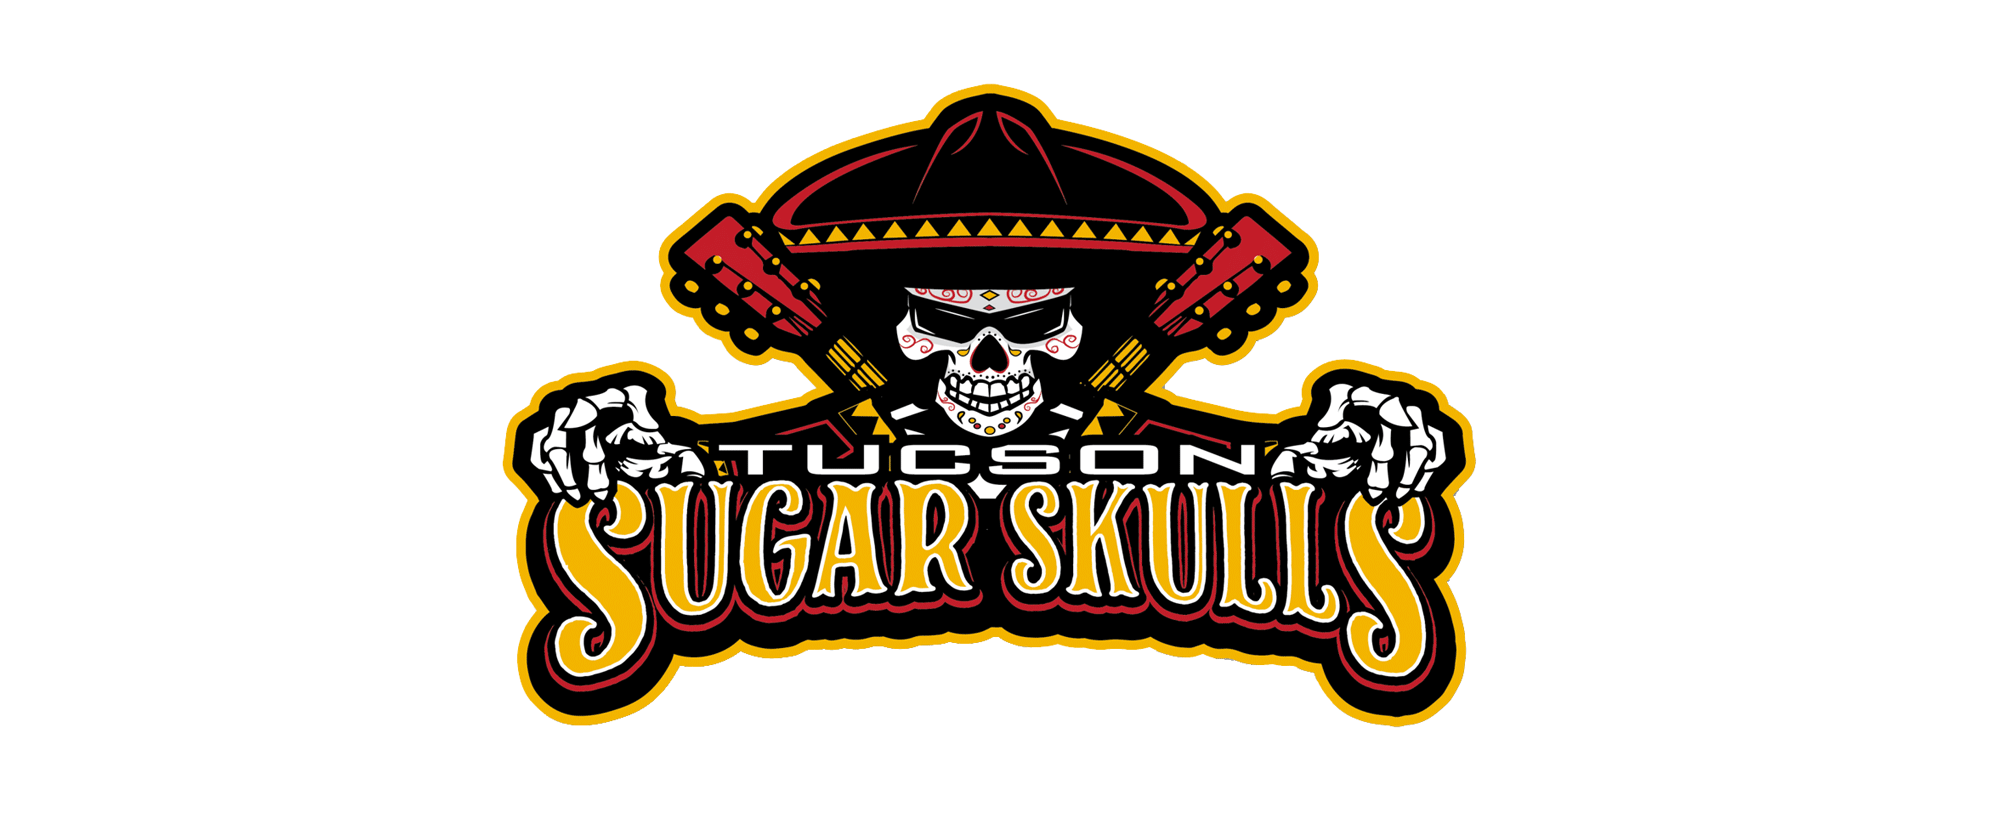 New Name and Logo for Tucson Sugar Skulls